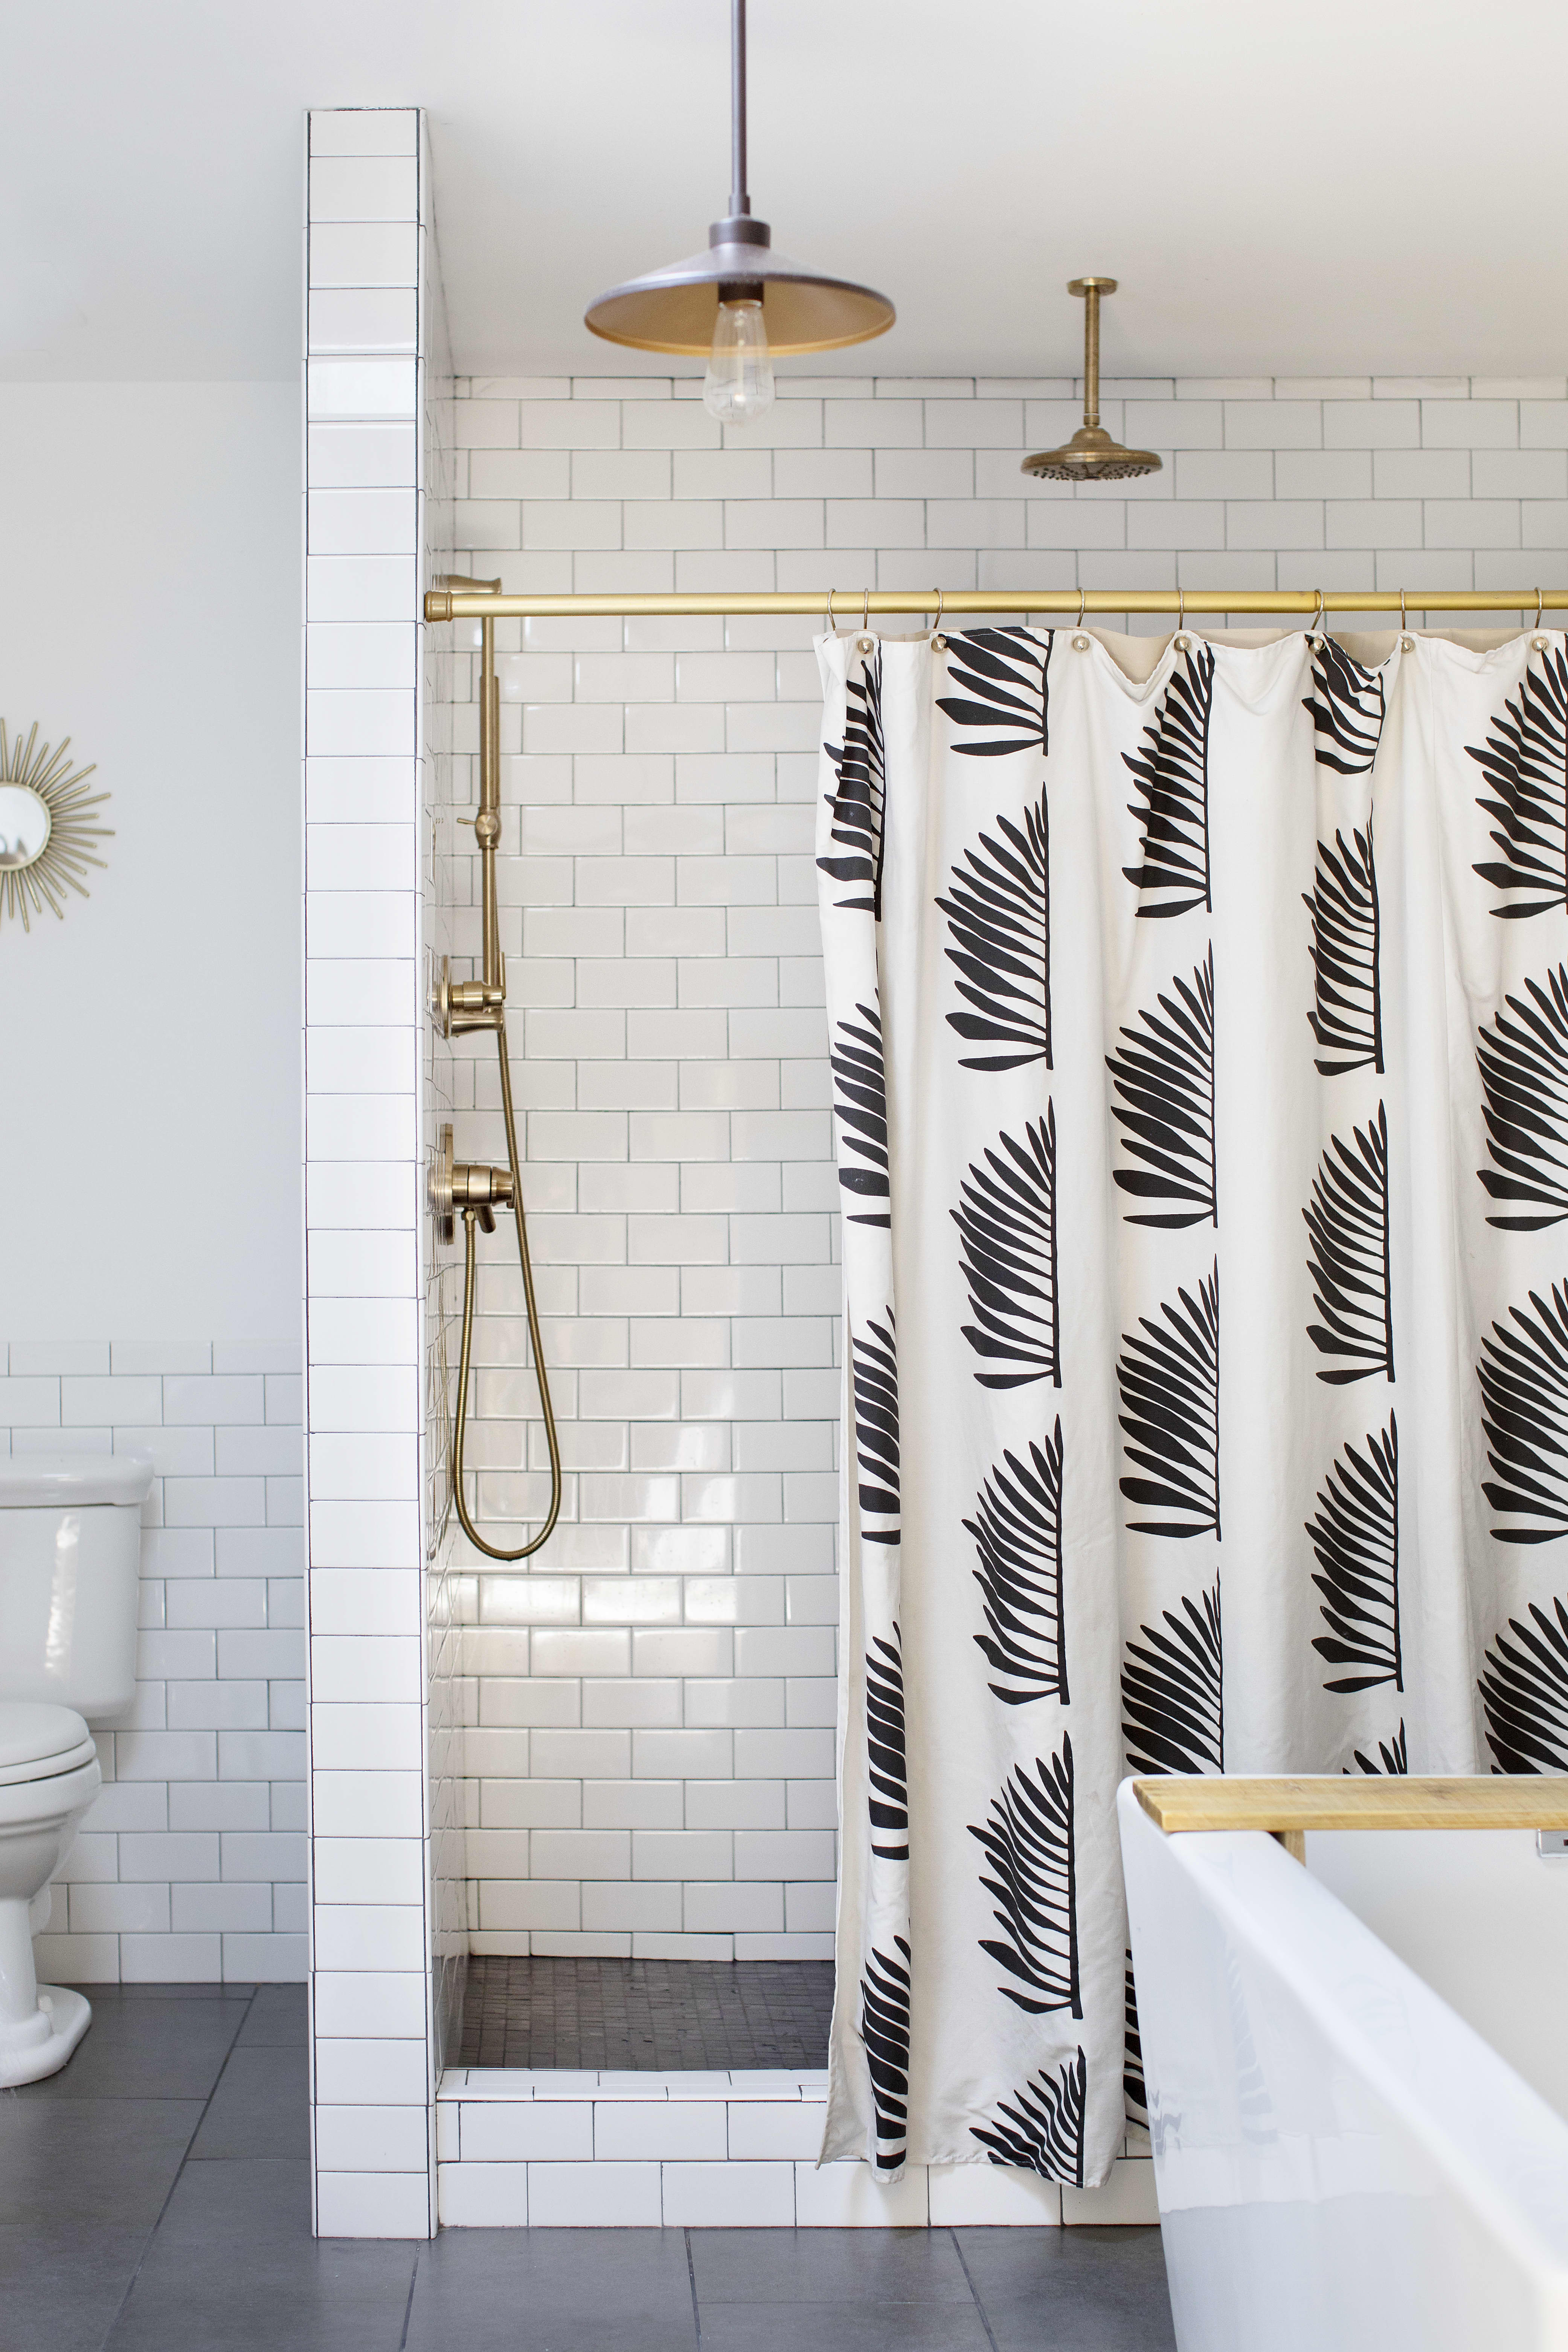 bathroom remodel cost - how to budget a renovation | apartment therapy